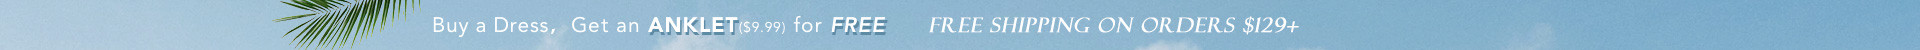 Get an anklet for free!